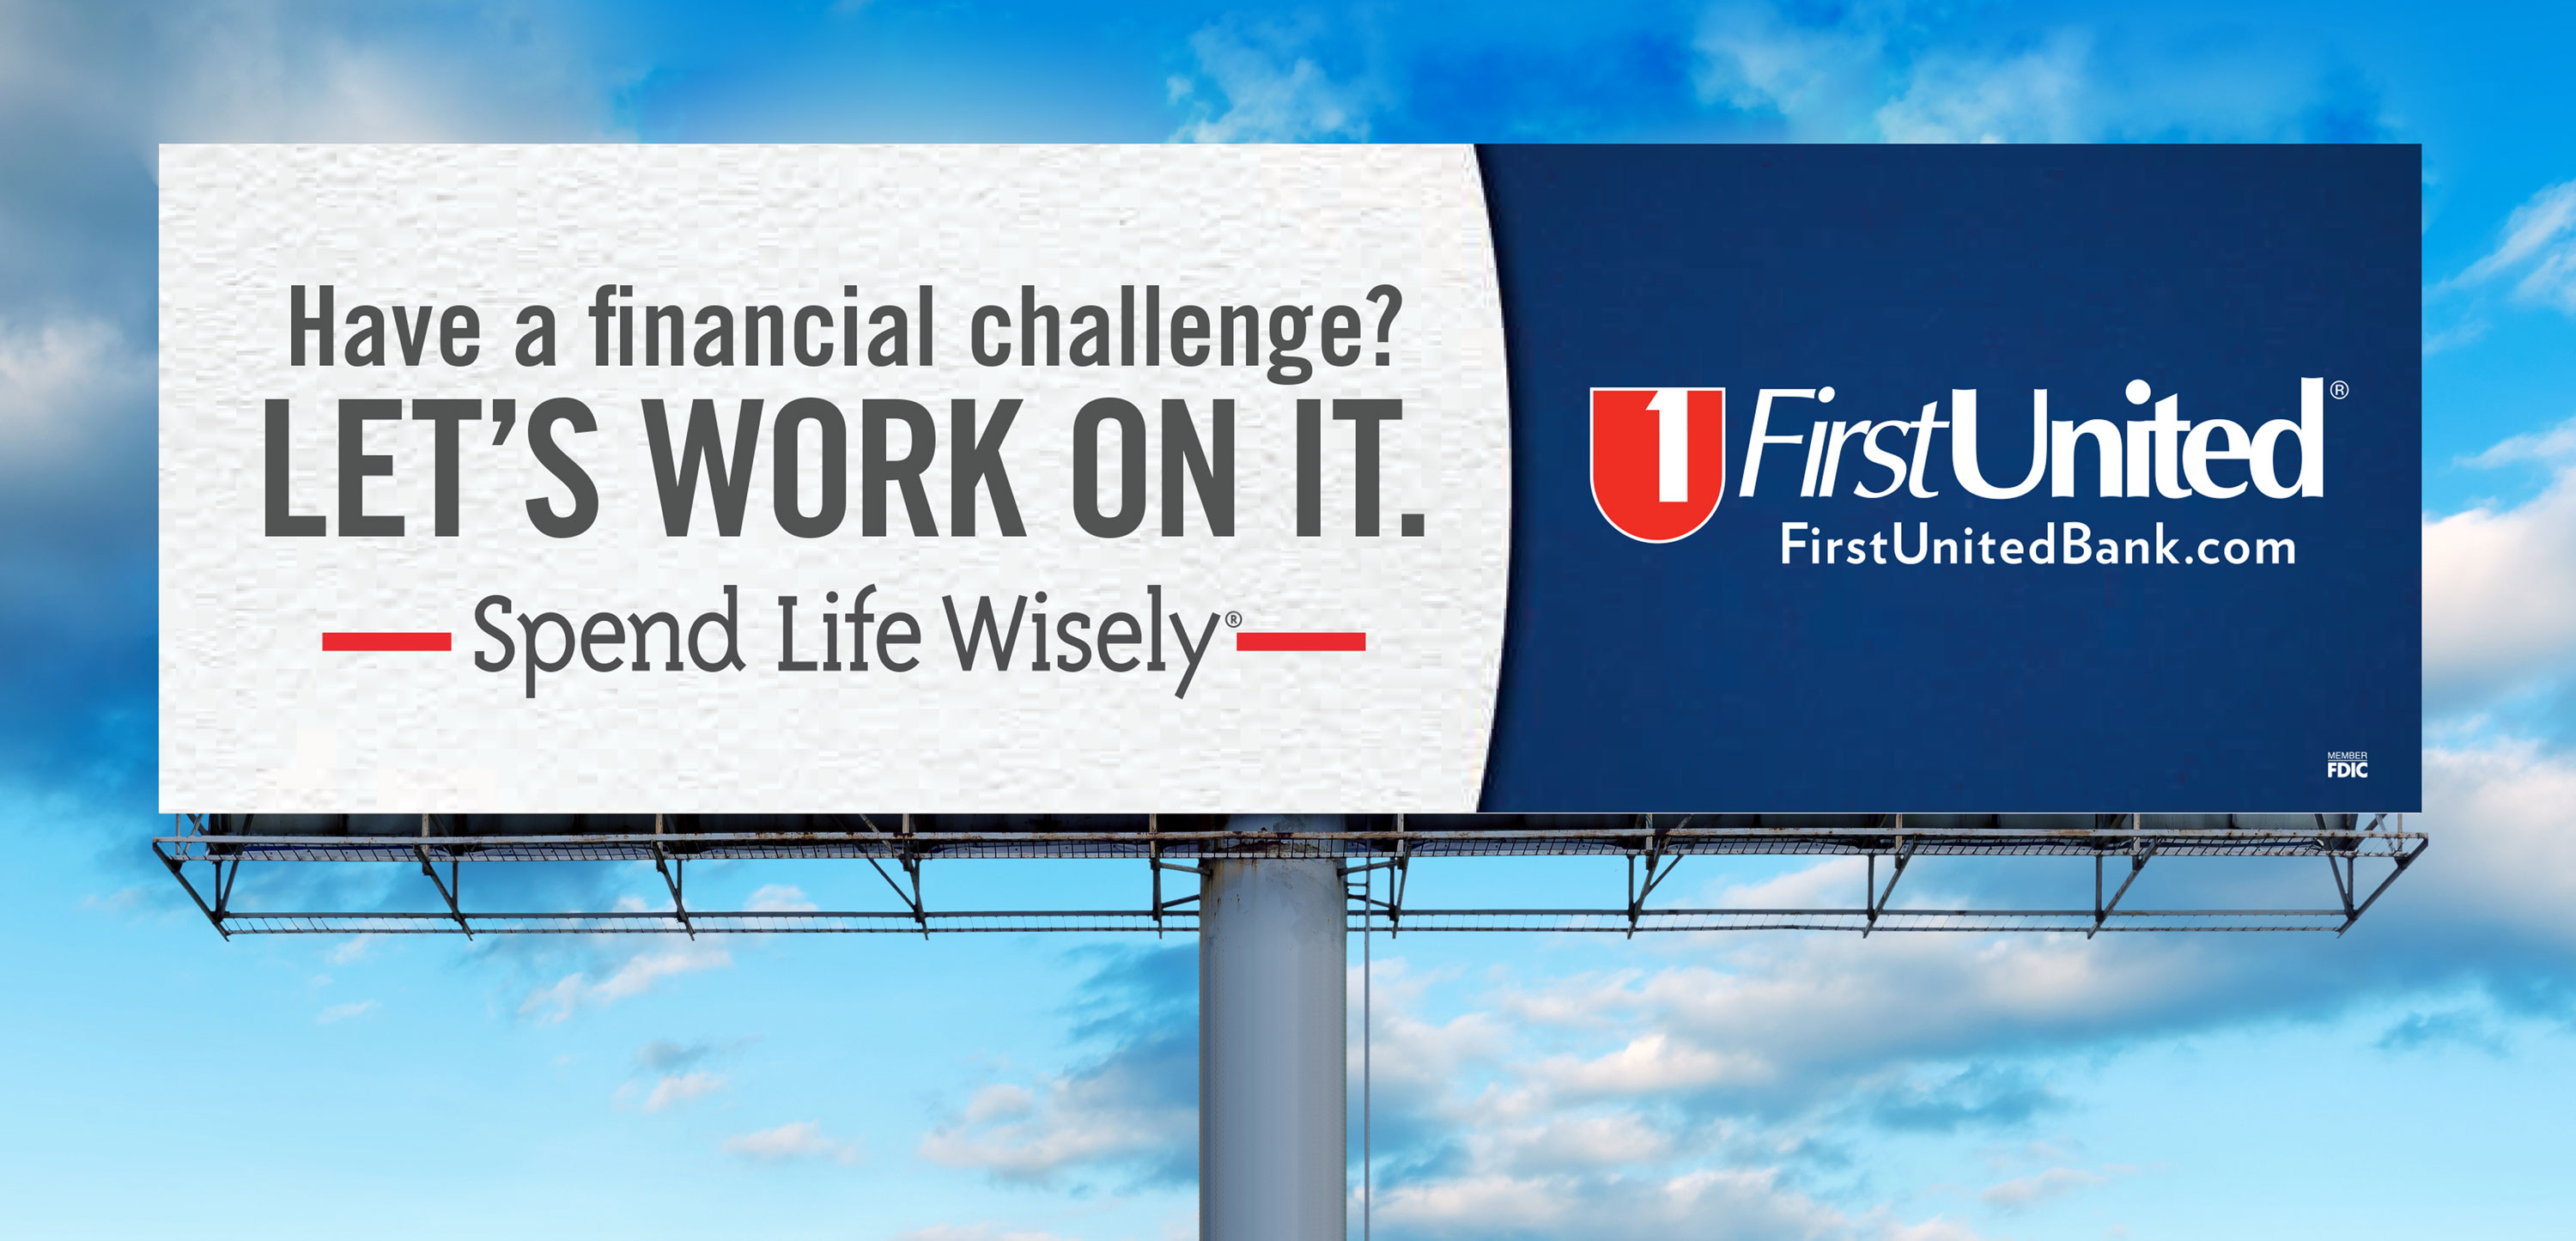 First United Bank Financial Challenge Outdoor